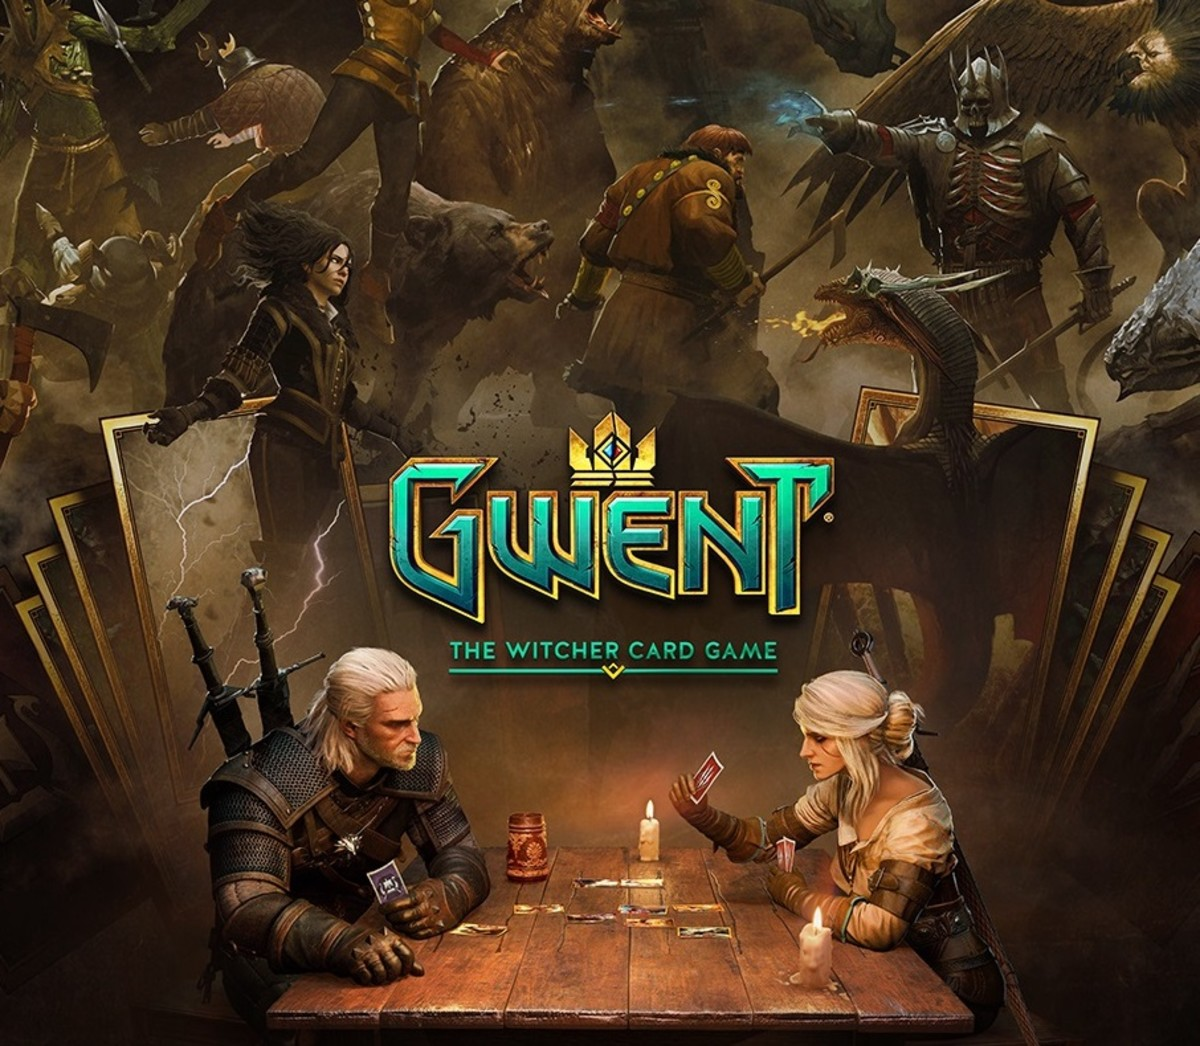 Gwent in The Witcher 3